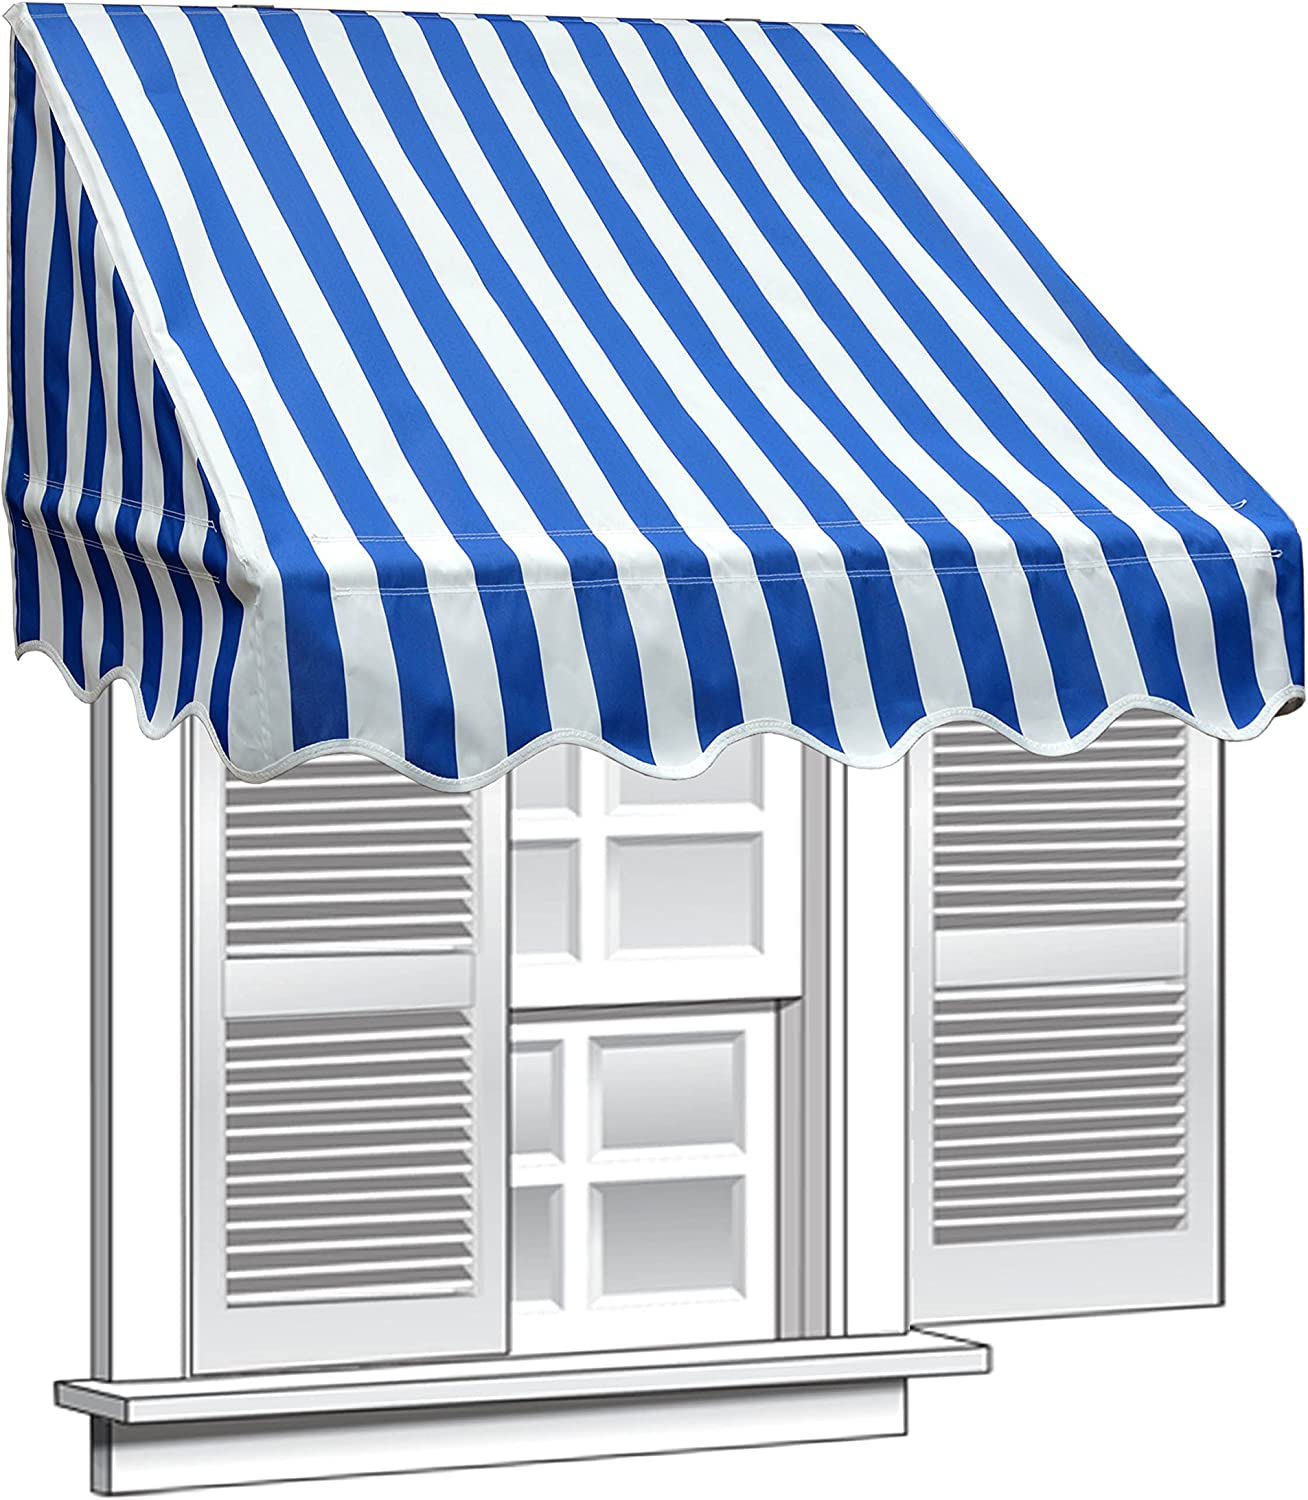 ALEKO 4×2 Feet Blue White Stripe Window Awning Door Canopy 4-Foot Decorator Awning